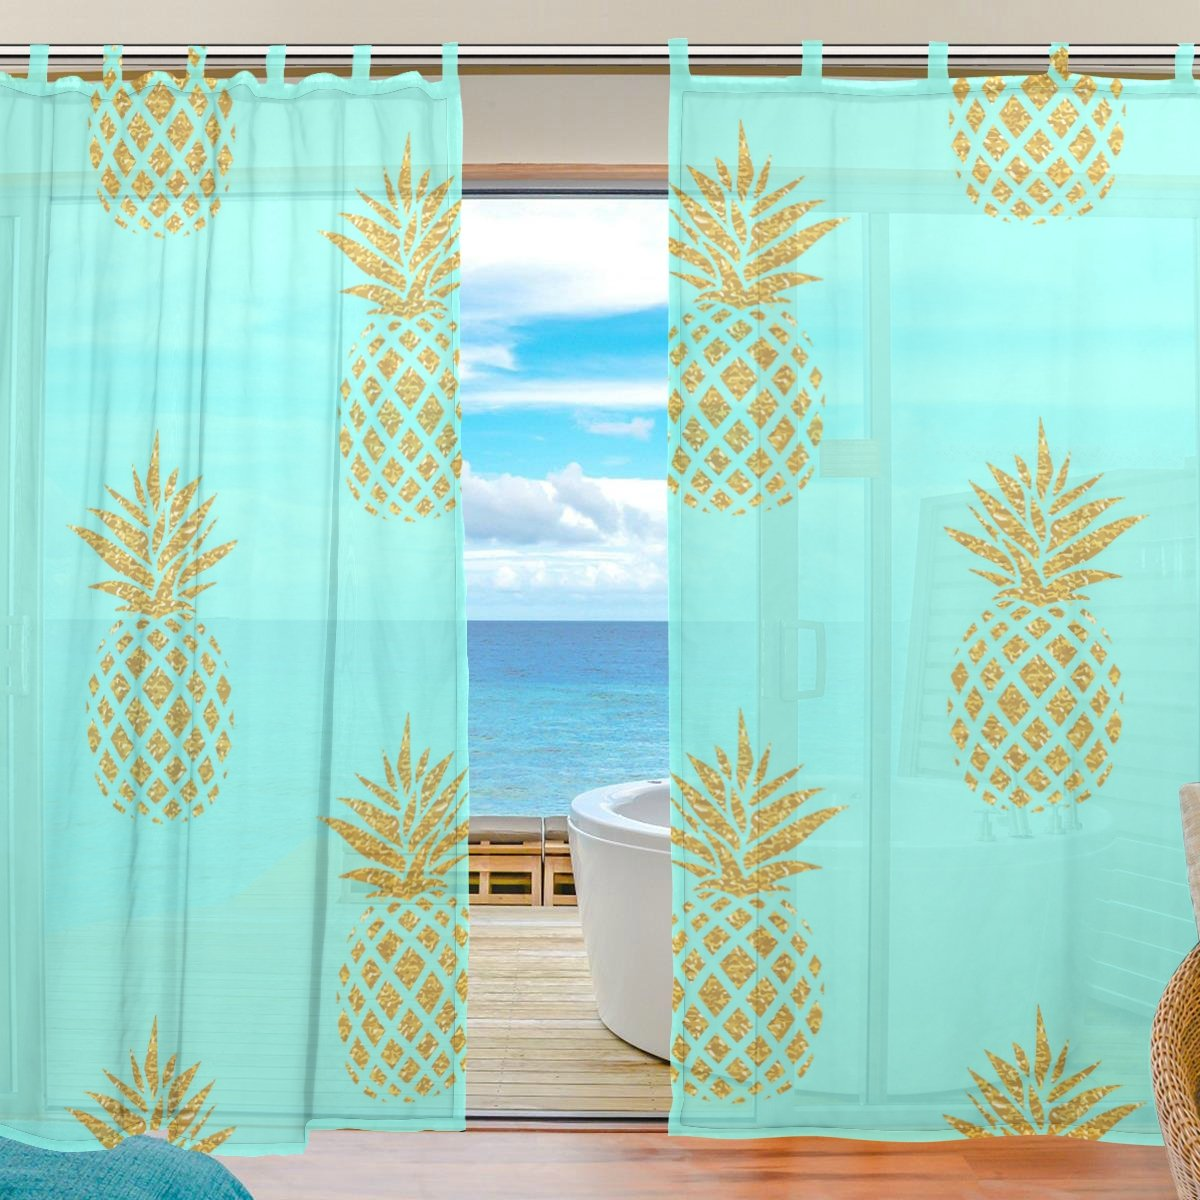 "La Random Tropical Fruit Pineapple Gold And Blue Window Sheer Voile Curtains for Living Room Bedroom Kids Room Curtains Polyester 55""Wx78""L Per Panel Set of 2 Panels"